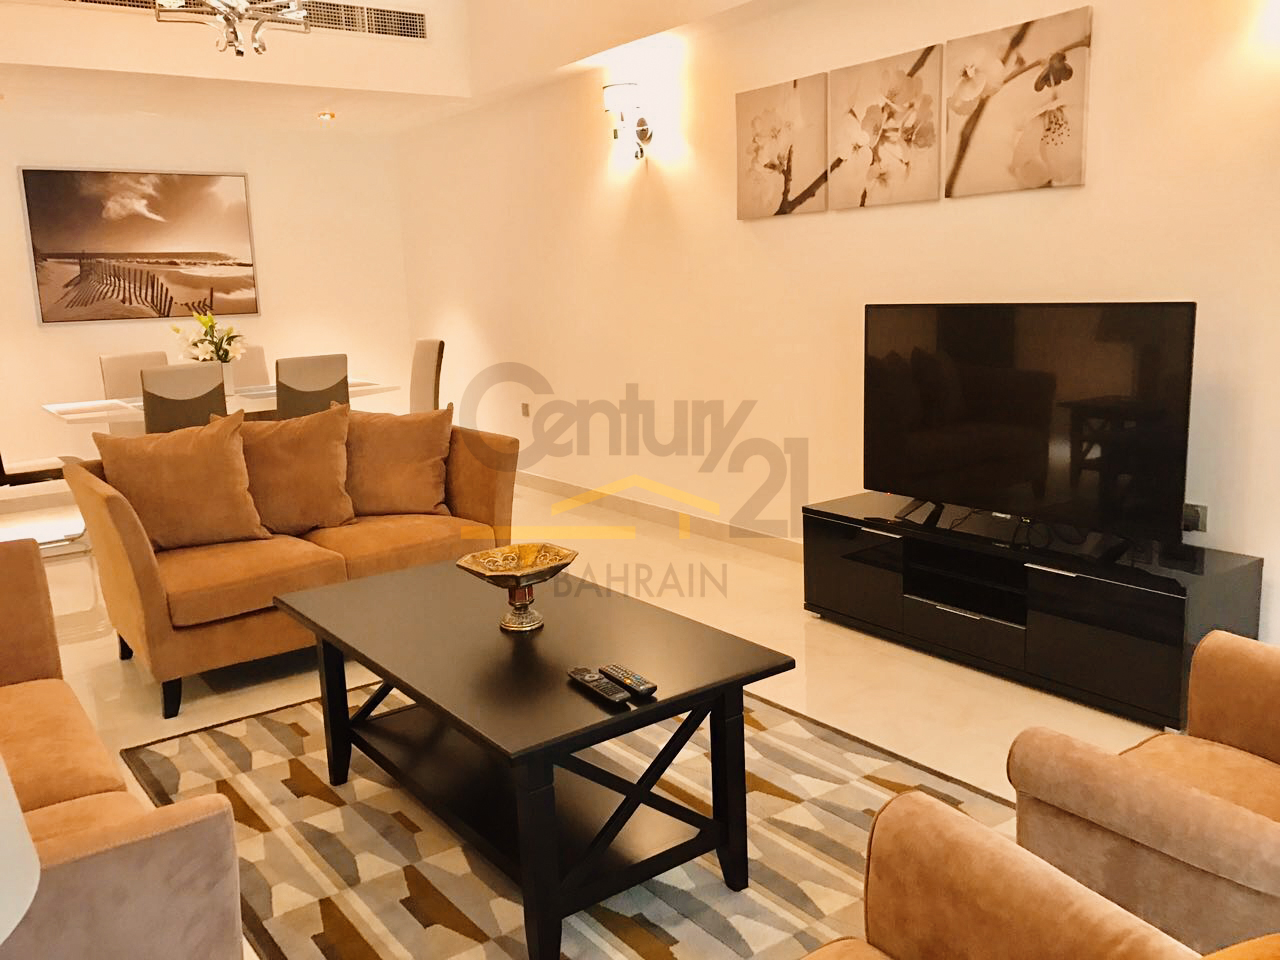 Brand new 2 bedroom furnished apartment in juffair for rent